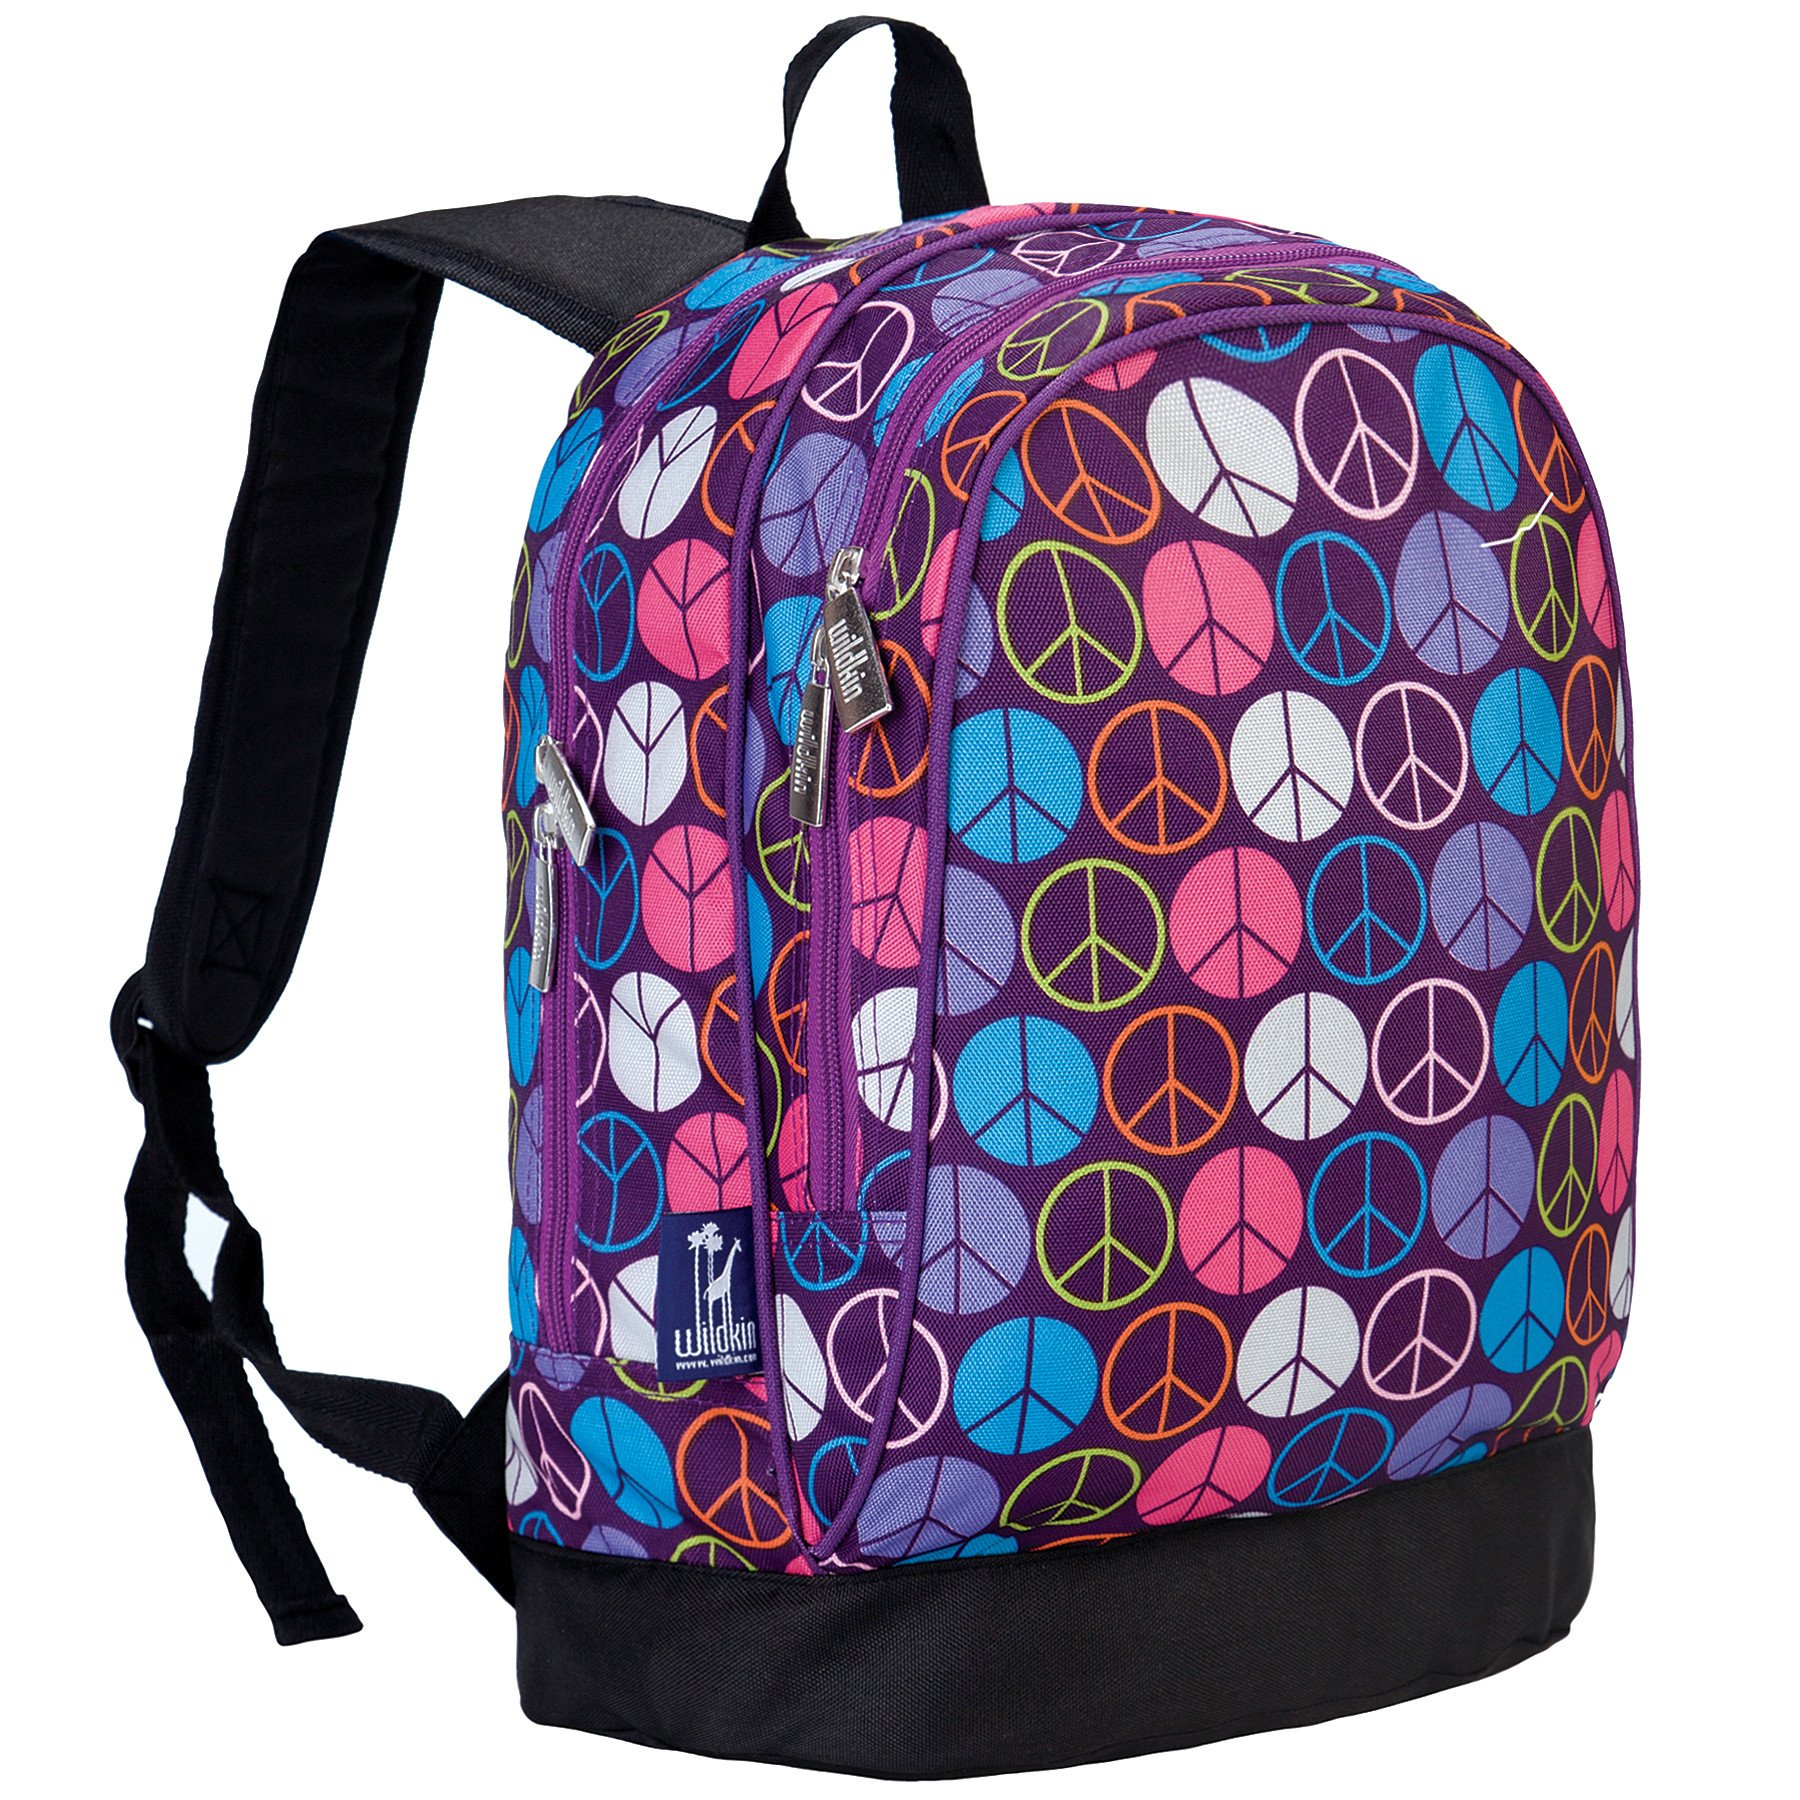 Wildkin Sidekick Backpacks. Wildkin Sidekick Backpacks Personalized Backpack 953b3b8bc3030